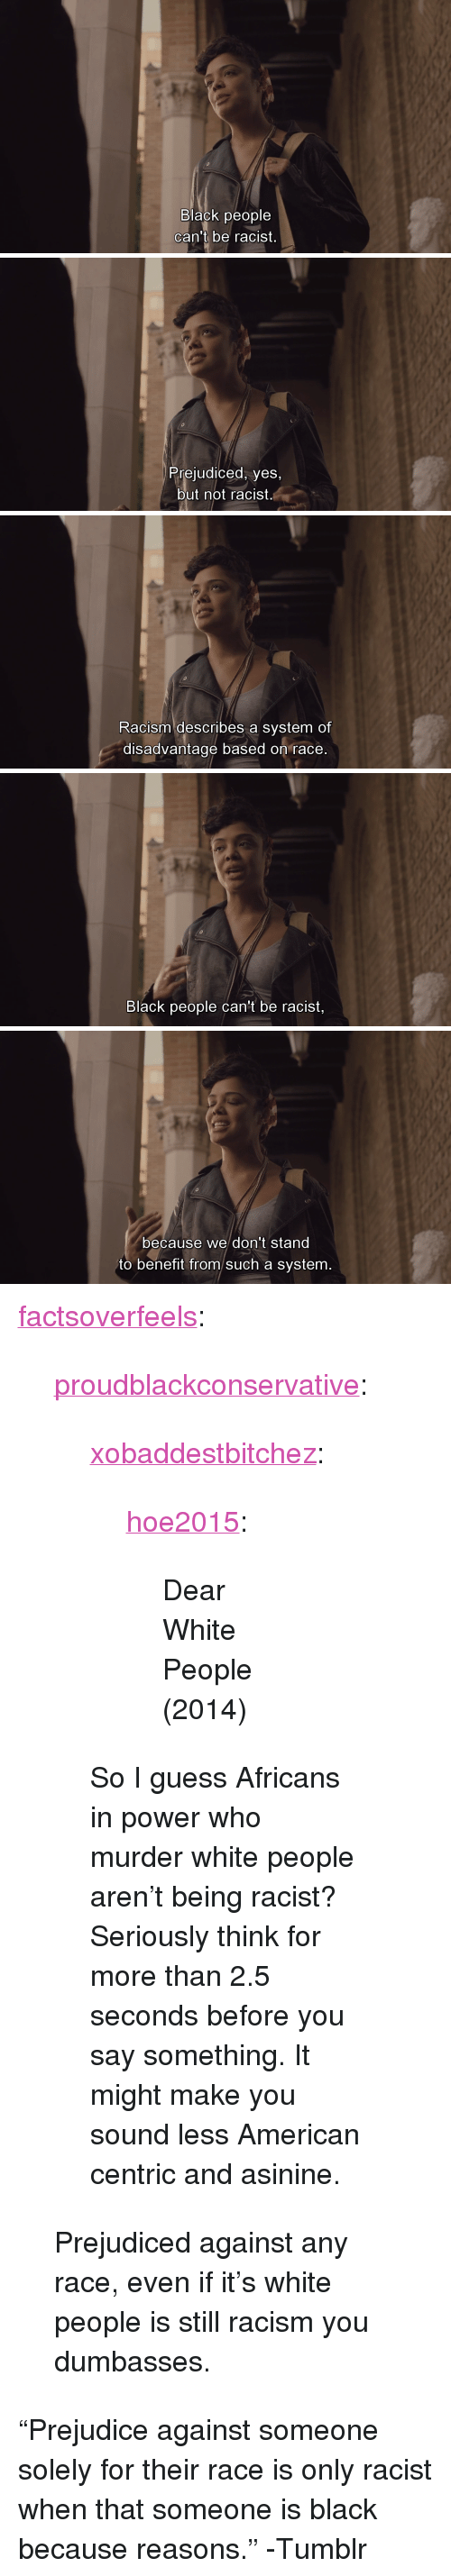 """Because Reasons: Black people  can't oe racist.   Prejudiced, yes,  but not racist   Racism describes a system of  disadvantage based on race   Black people can't be racist,   because we don't stand  to benefit from such a system. <p><a href=""""http://factsoverfeels.tumblr.com/post/127241837411/proudblackconservative-xobaddestbitchez"""" class=""""tumblr_blog"""">factsoverfeels</a>:</p>  <blockquote><p><a href=""""http://proudblackconservative.tumblr.com/post/127219129379/xobaddestbitchez-hoe2015-dear-white-people"""" class=""""tumblr_blog"""">proudblackconservative</a>:</p>  <blockquote><p><a href=""""http://xobaddestbitchez.tumblr.com/post/109150188162/hoe2015-dear-white-people-2014"""" class=""""tumblr_blog"""">xobaddestbitchez</a>:</p> <blockquote> <p><a href=""""http://hoe2015.tumblr.com/post/109048320111/dear-white-people-2014"""" class=""""tumblr_blog"""">hoe2015</a>:</p> <blockquote> <p>Dear White People (2014)</p> </blockquote>  </blockquote>  <p>So I guess Africans in power who murder white people aren't being racist? Seriously think for more than 2.5 seconds before you say something. It might make you sound less American centric and asinine.</p></blockquote>  <p>Prejudiced against any race, even if it's white people is still racism you dumbasses.</p></blockquote>  <p>&ldquo;Prejudice against someone solely for their race is only racist when that someone is black because reasons.&rdquo; -Tumblr</p>"""